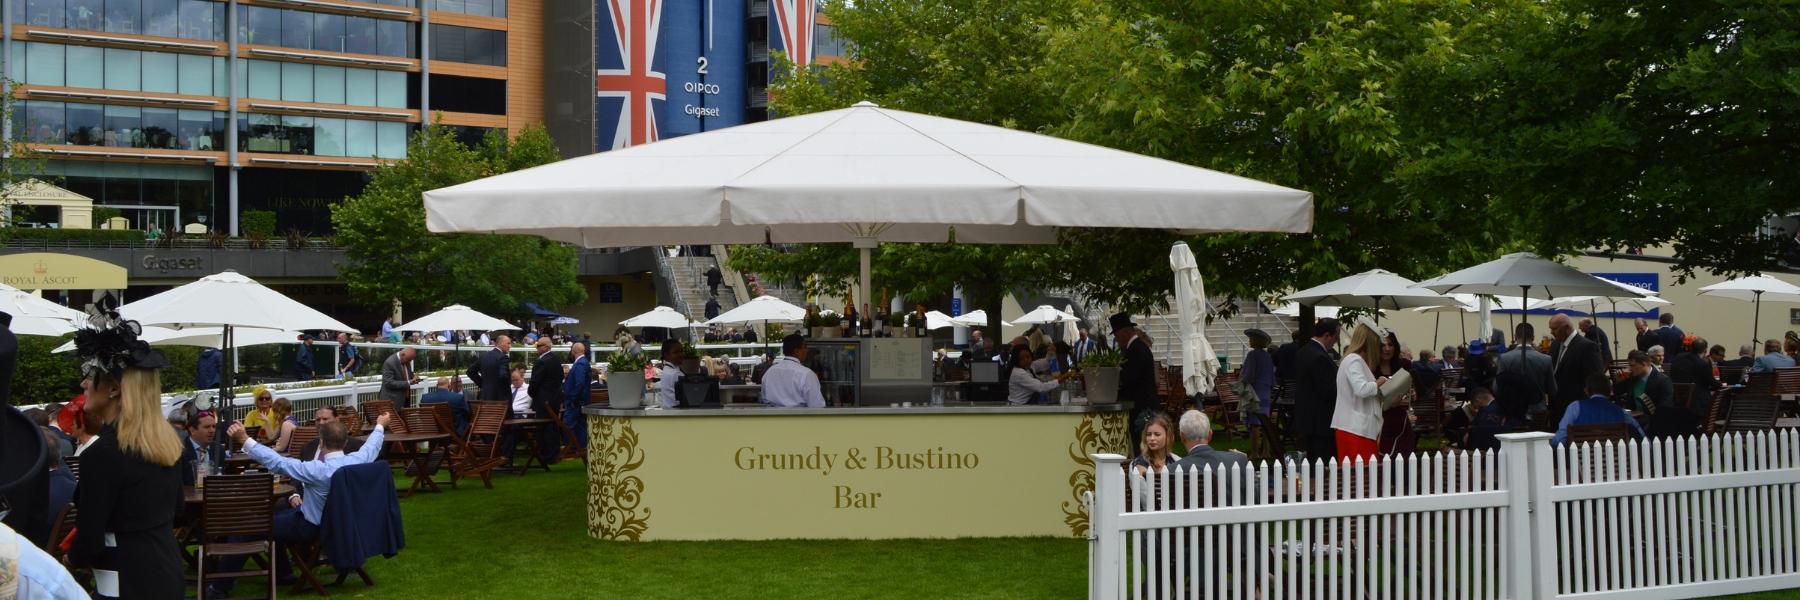 <p>Parasols-Jumbo-Umbrella-Bar-Premium-Stylish-Champagne-Racecourse-Bar</p> <p></p> <p>Elegant Jumbo Parasol offering the ideal shade solution, providing super reinforcement in the framework and arms, giving comfort and protection from the environmental conditions be it blazing hot sunshine or rain.</p> <p></p> <p>Popular not just within the hospitality industry and associated sectors, but also the parasol of choice of commercial and residential customers who demand high quality and cover for a larger space</p> <p></p> <p>Situated here within a premium quality champagne bar at a Racecourse</p>